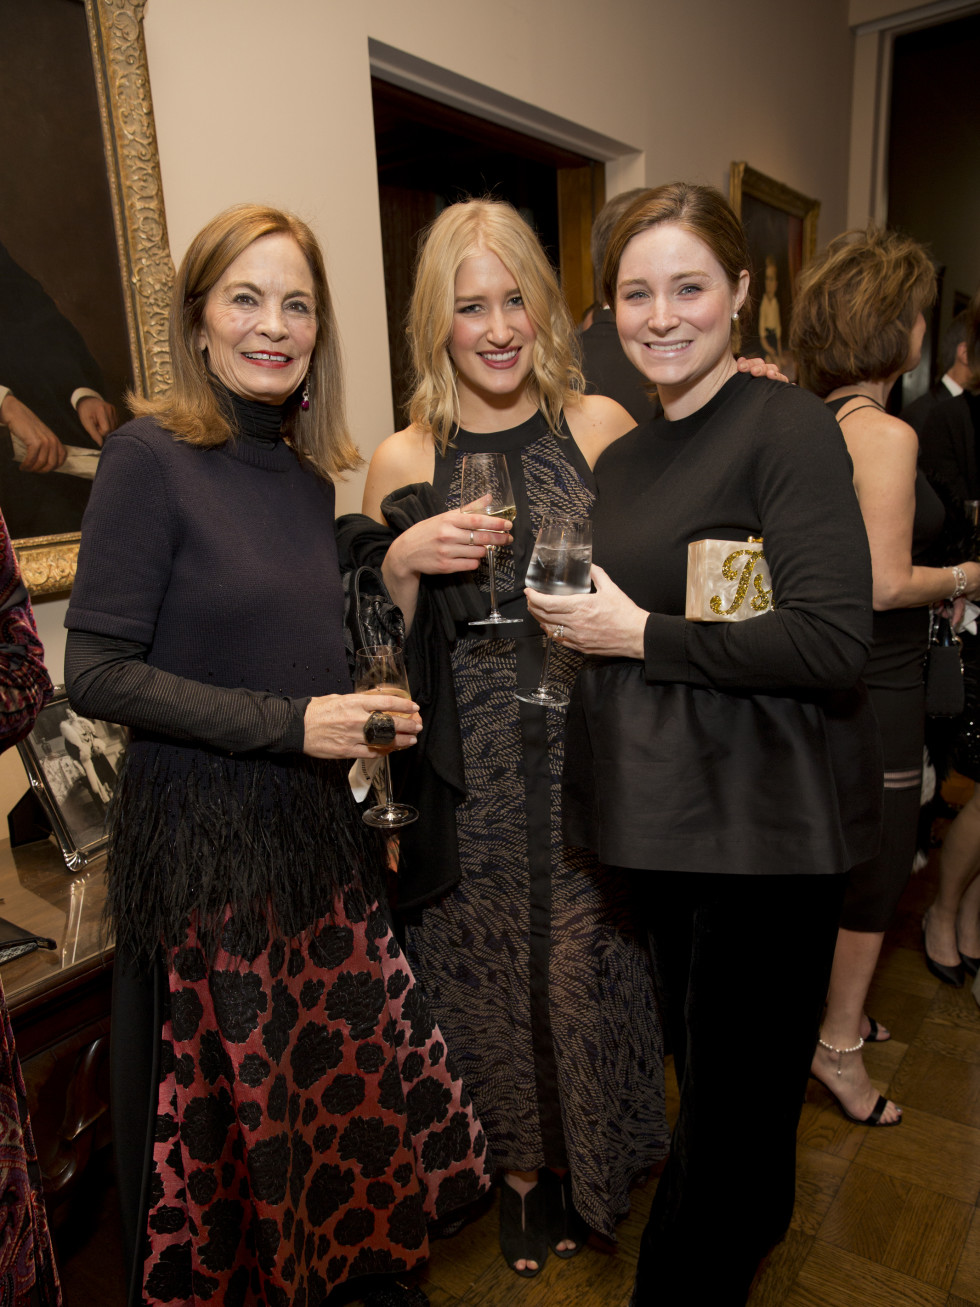 Rienzi society dinner, Feb. 2016, Cindy Thorp; Ann Wolpert; Isla Jornayvaz